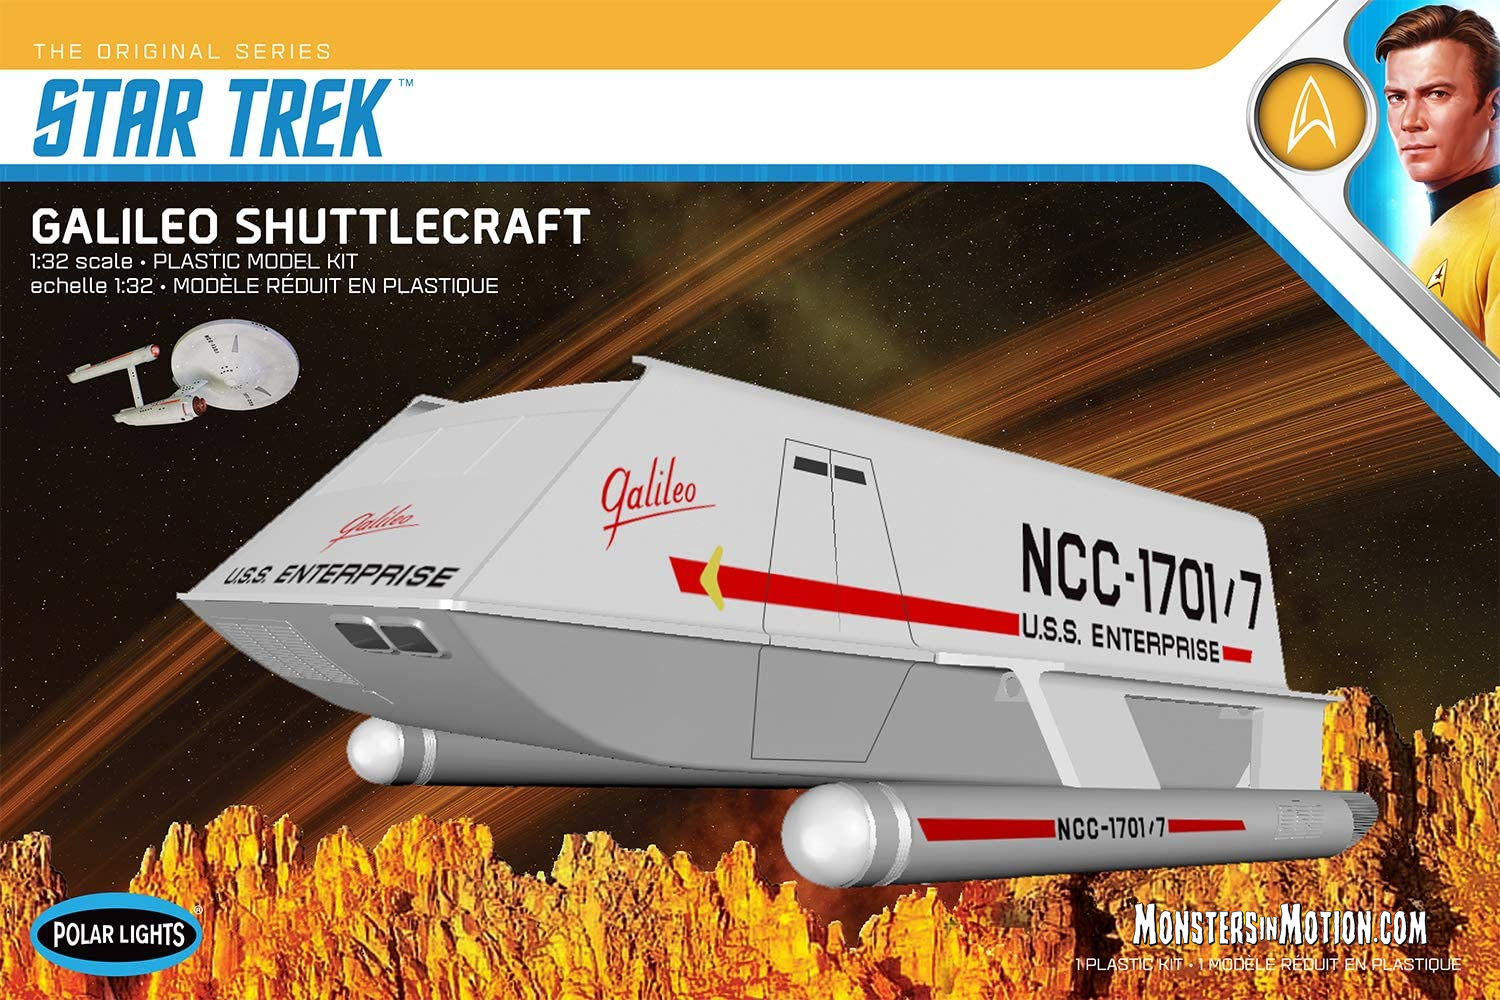 Star Trek Galileo Shuttlecraft 1/32 Scale Model Kit by Polar Lights